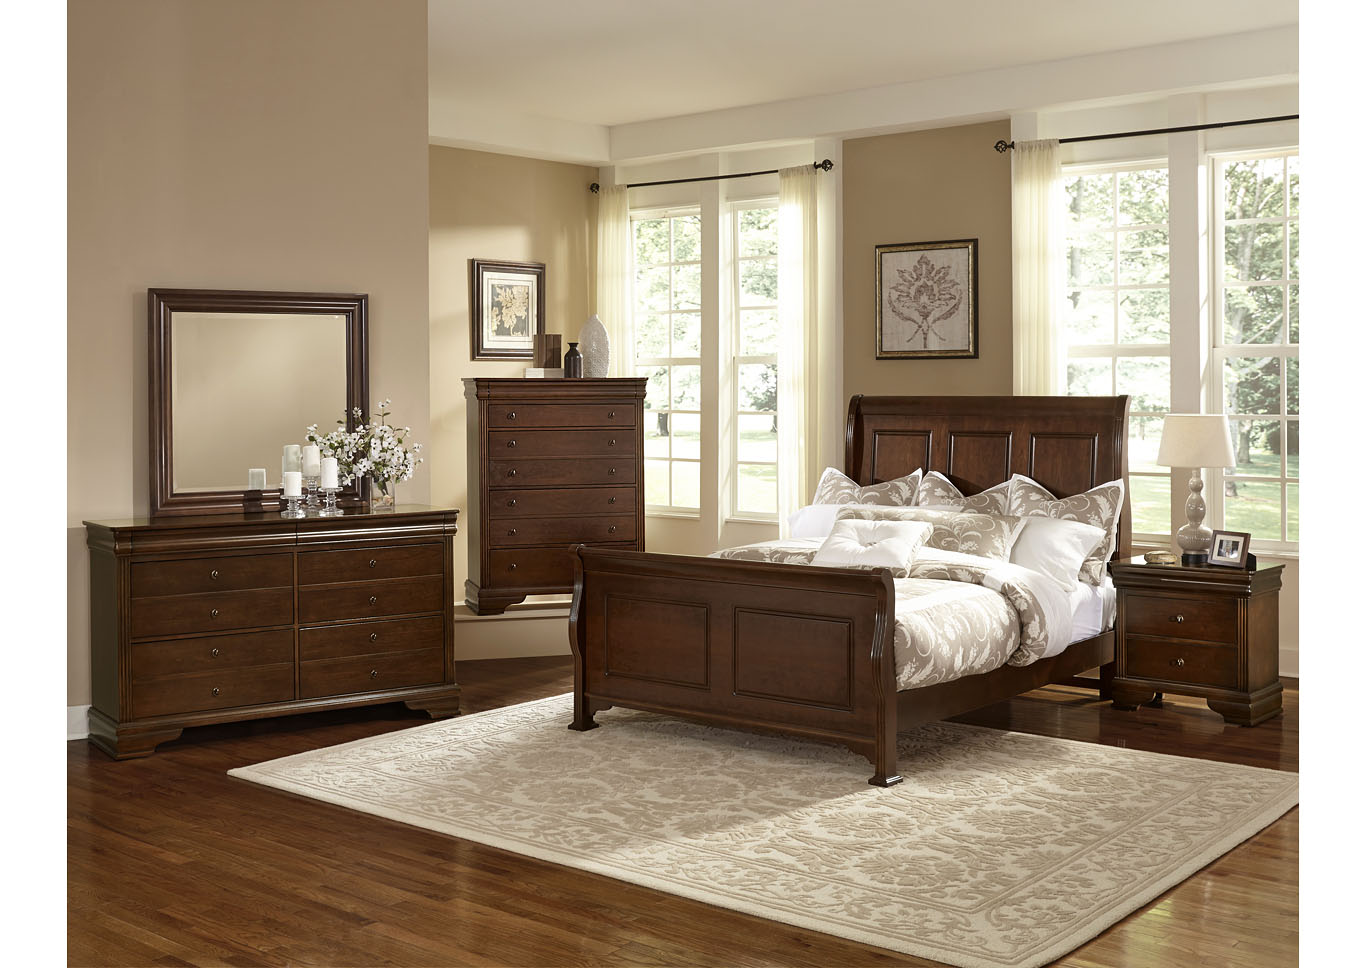 French Market French Cherry Queen Poster Bed w/ Dresser, Mirror and Drawer Chest,Vaughan-Bassett